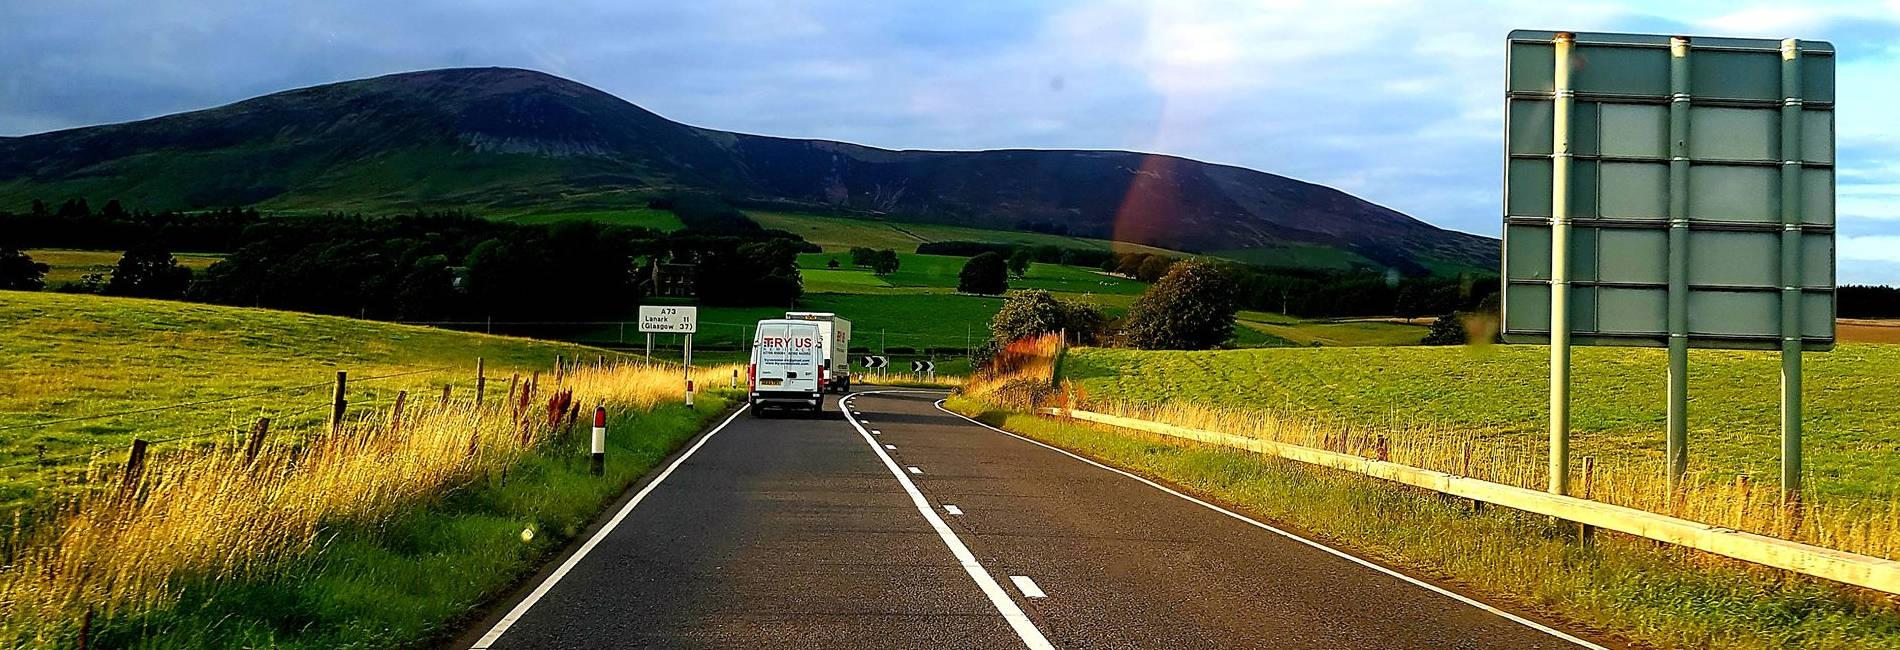 Hampshire Removal Company - Try Us Removals